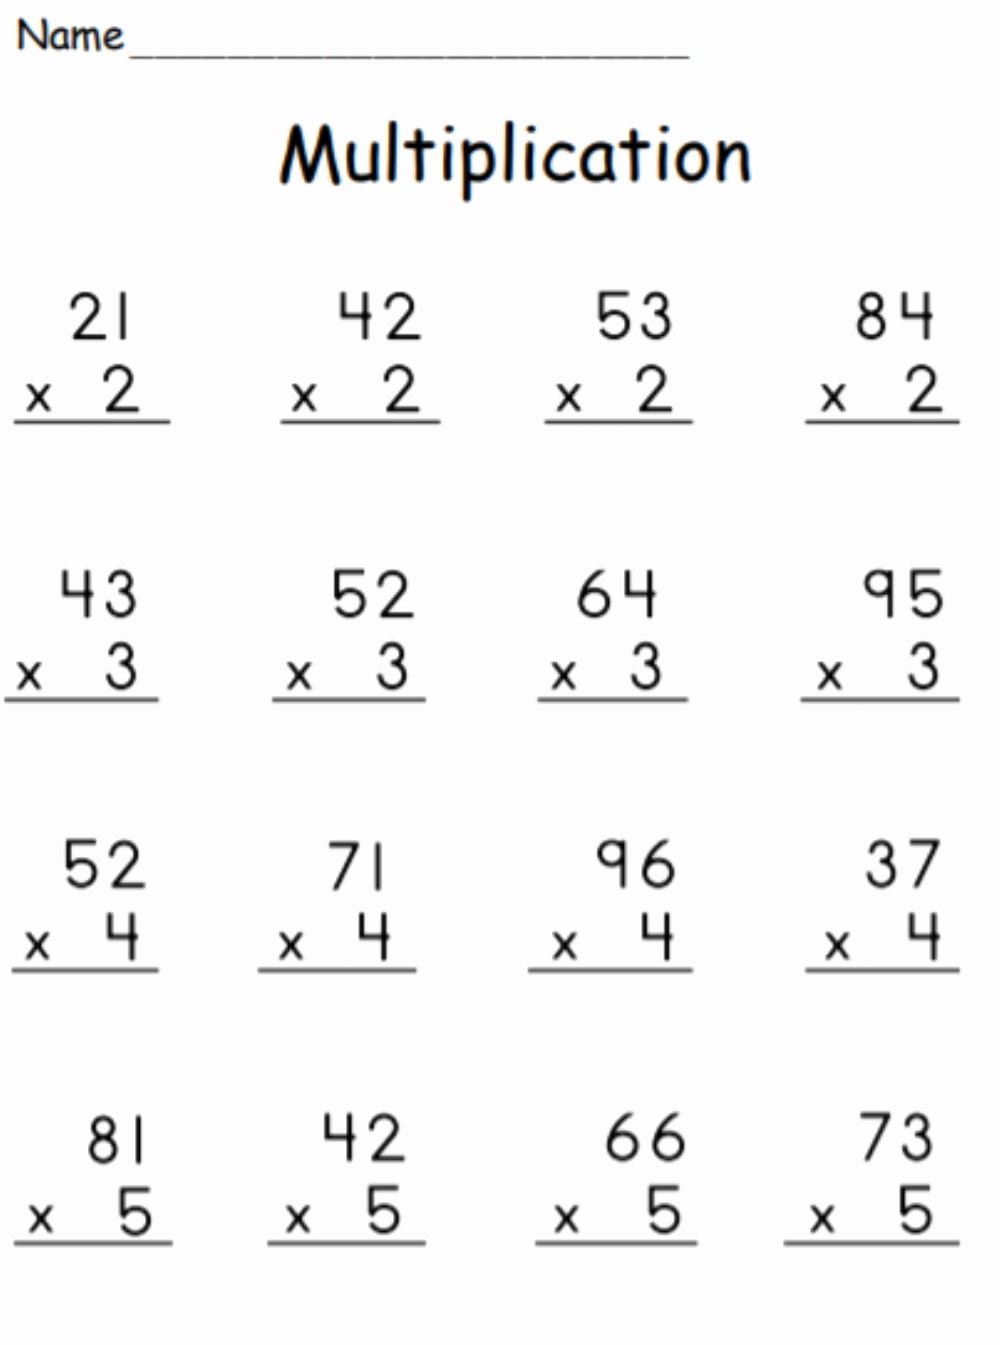 Multiplication Worksheets Two Digit by One Digit Awesome Multiplication 2 Digit by 1 Digit with Regrouping